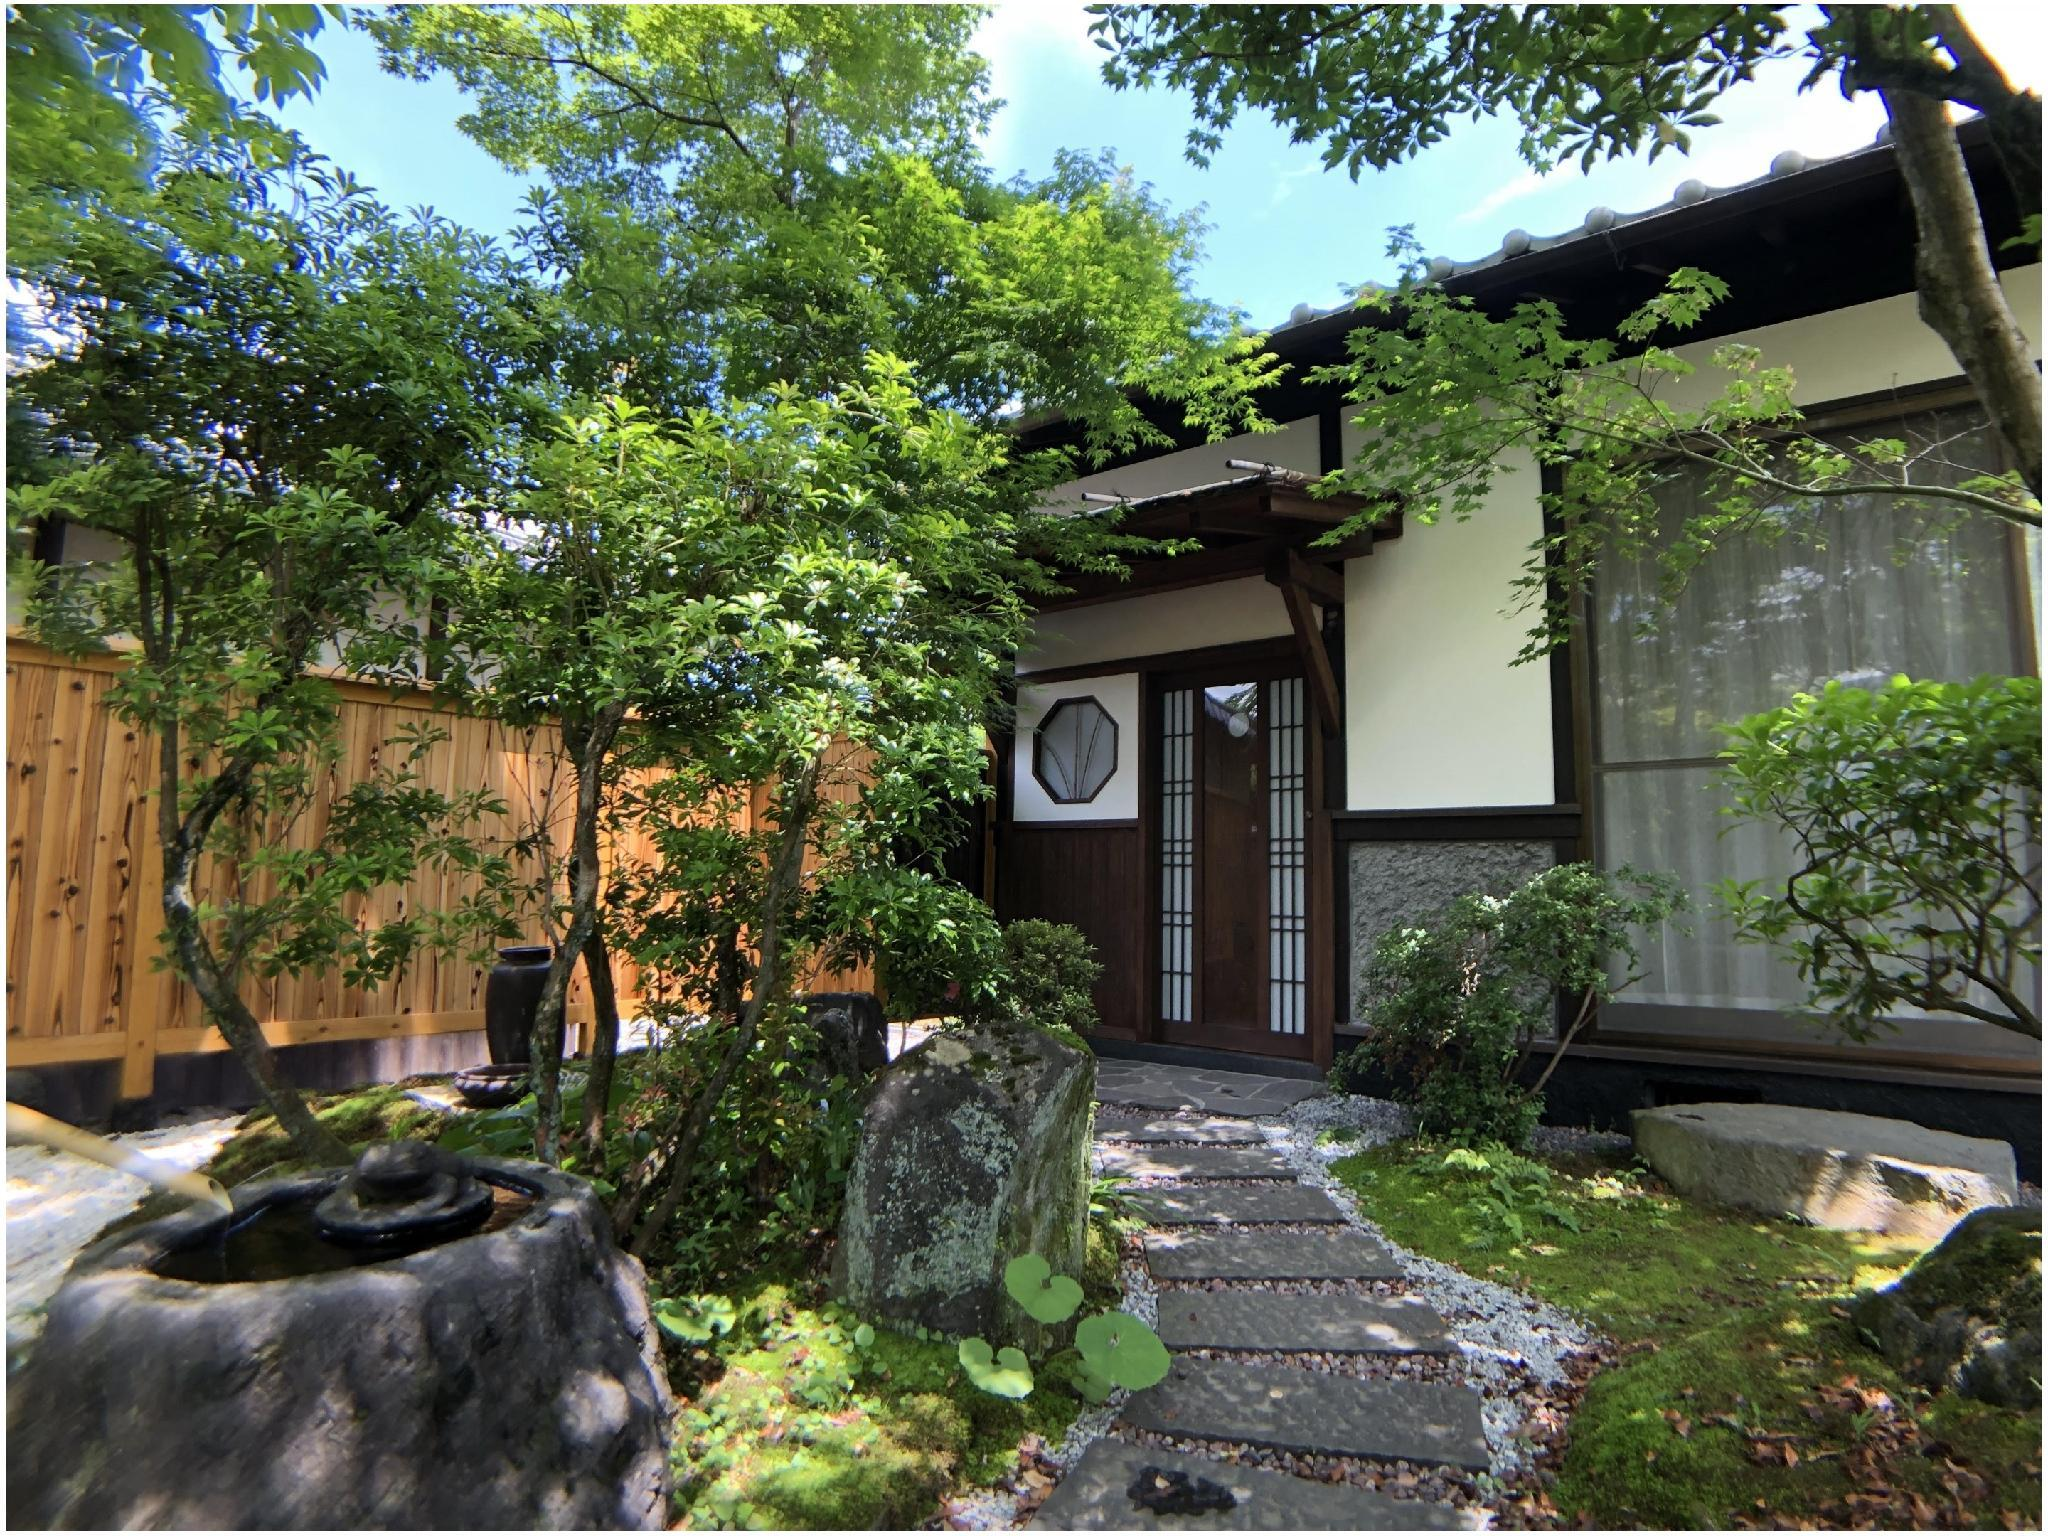 1동 건물(다다미 객실/정원) (Private House (Japanese-style Room + Garden))